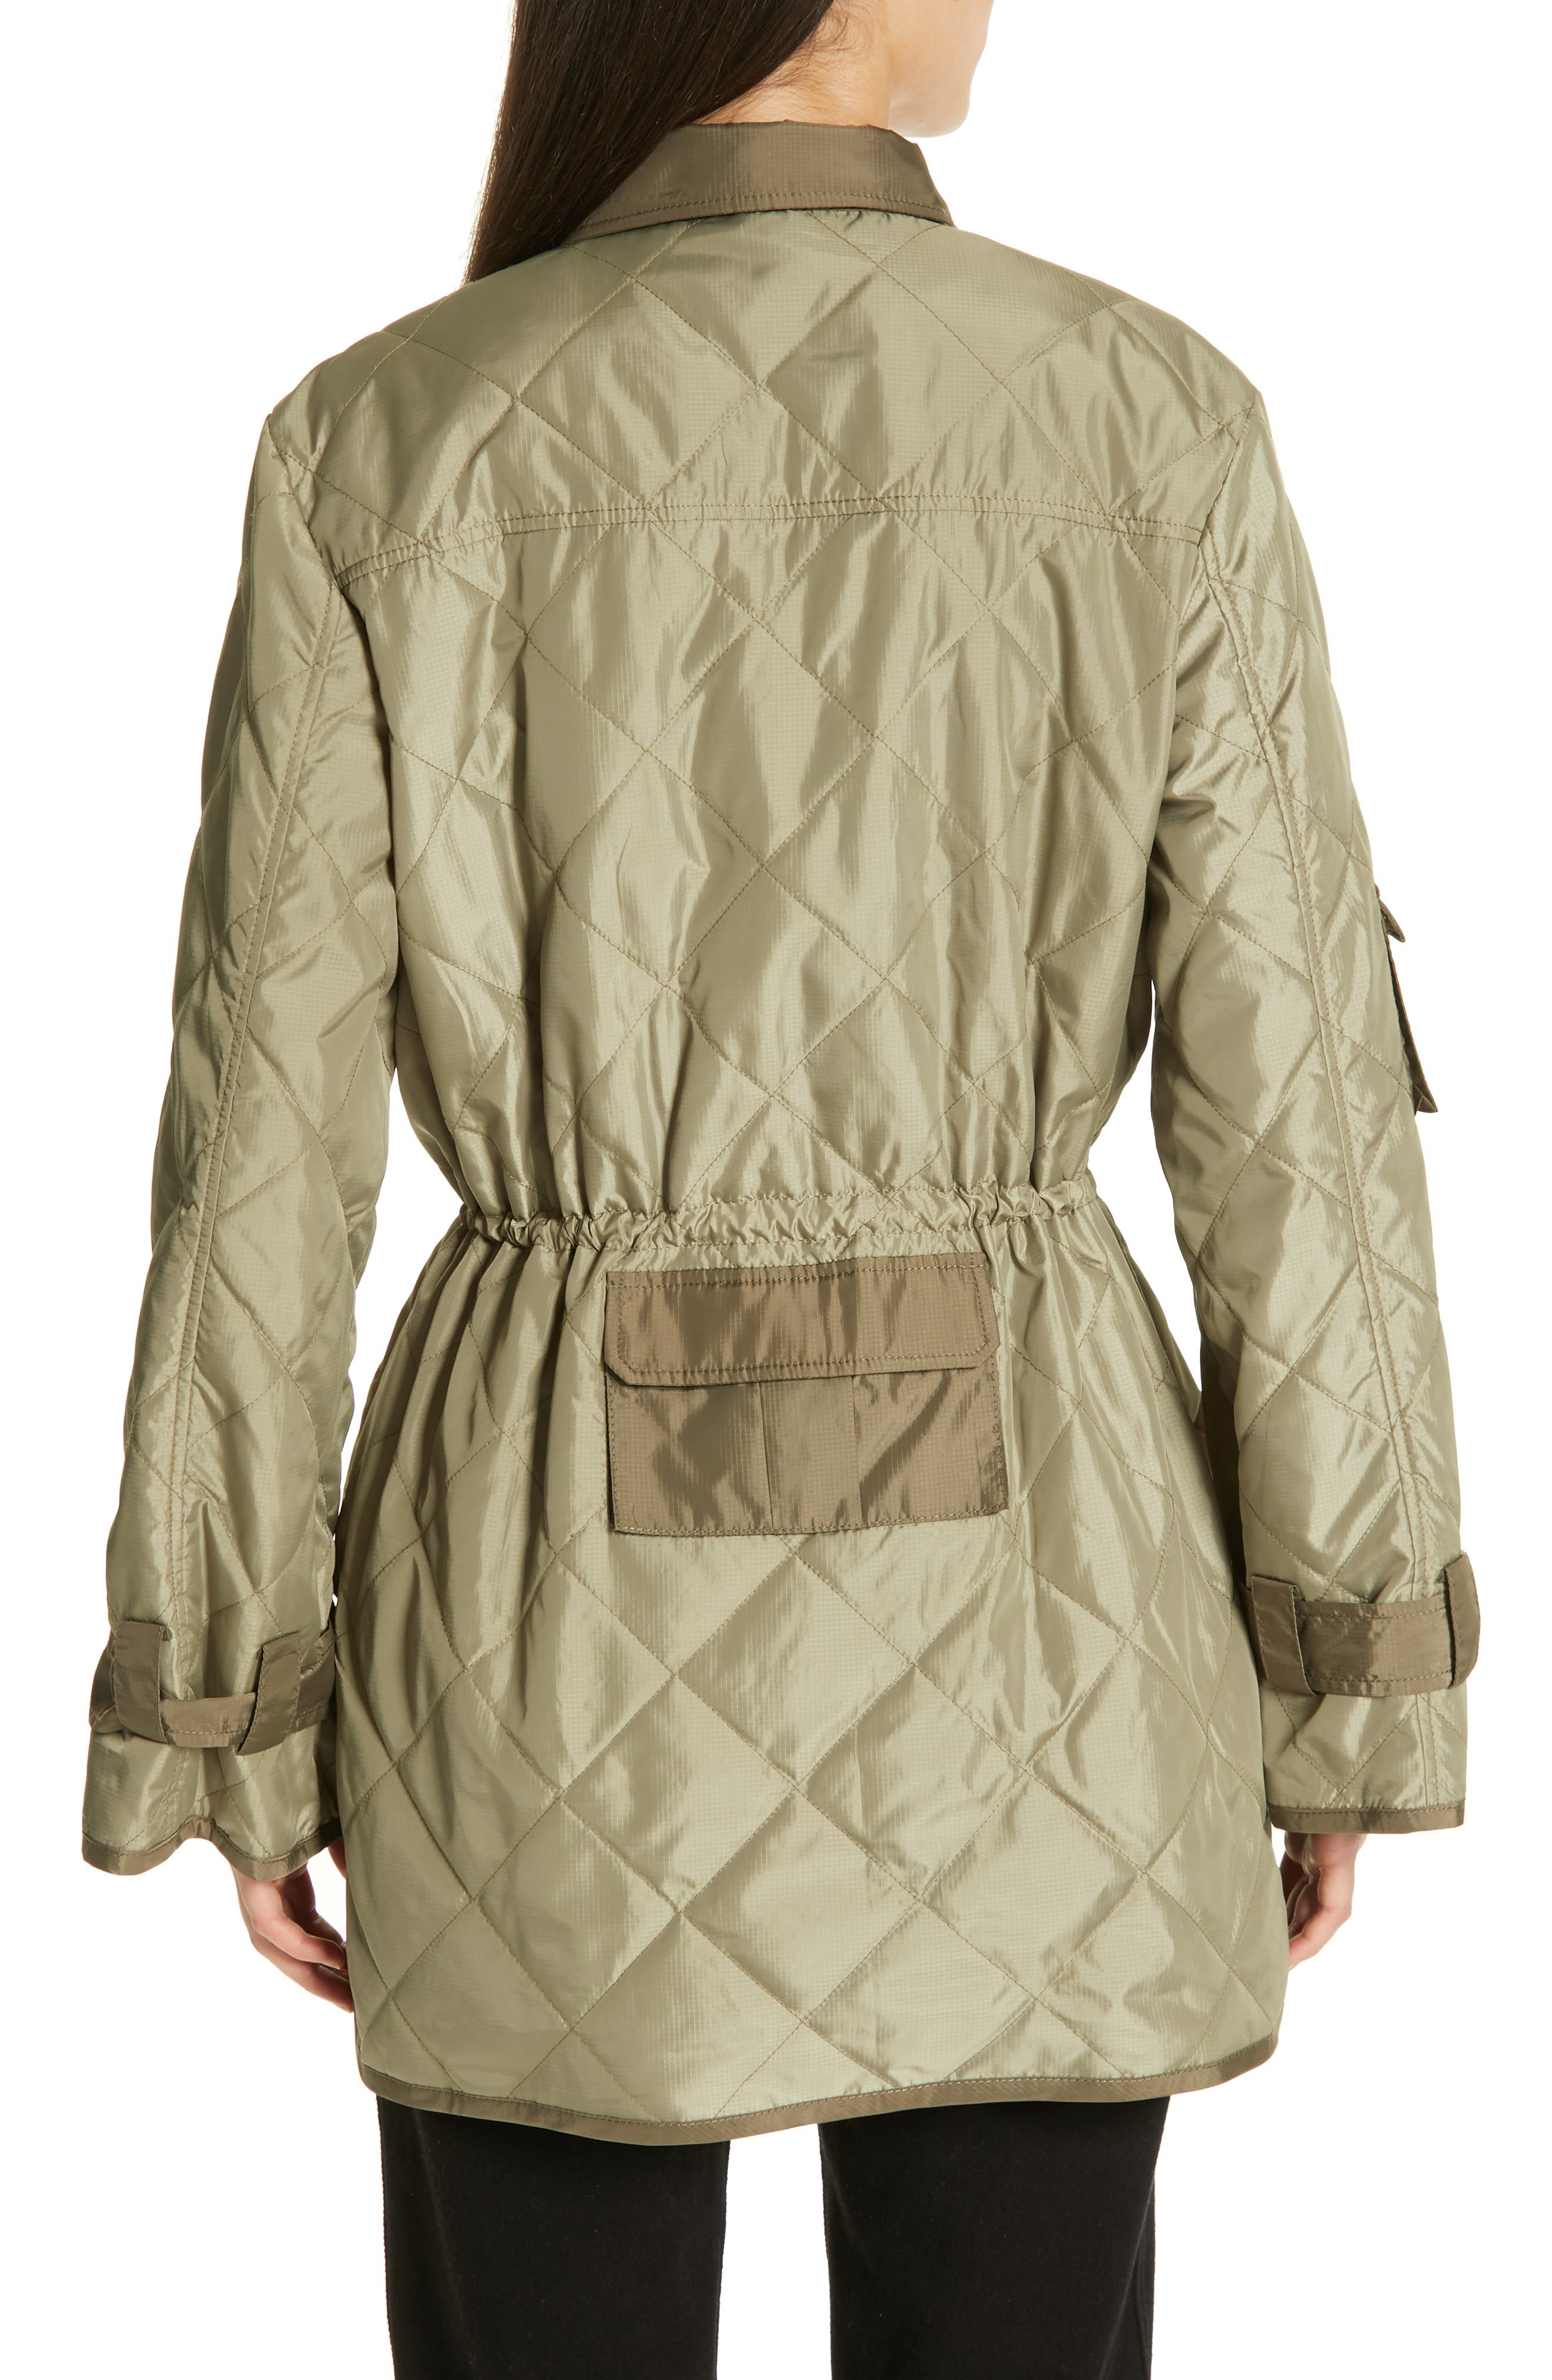 GANNI, Quilted Ripstop Jacket, Alternate thumbnail 2, color, ALOE